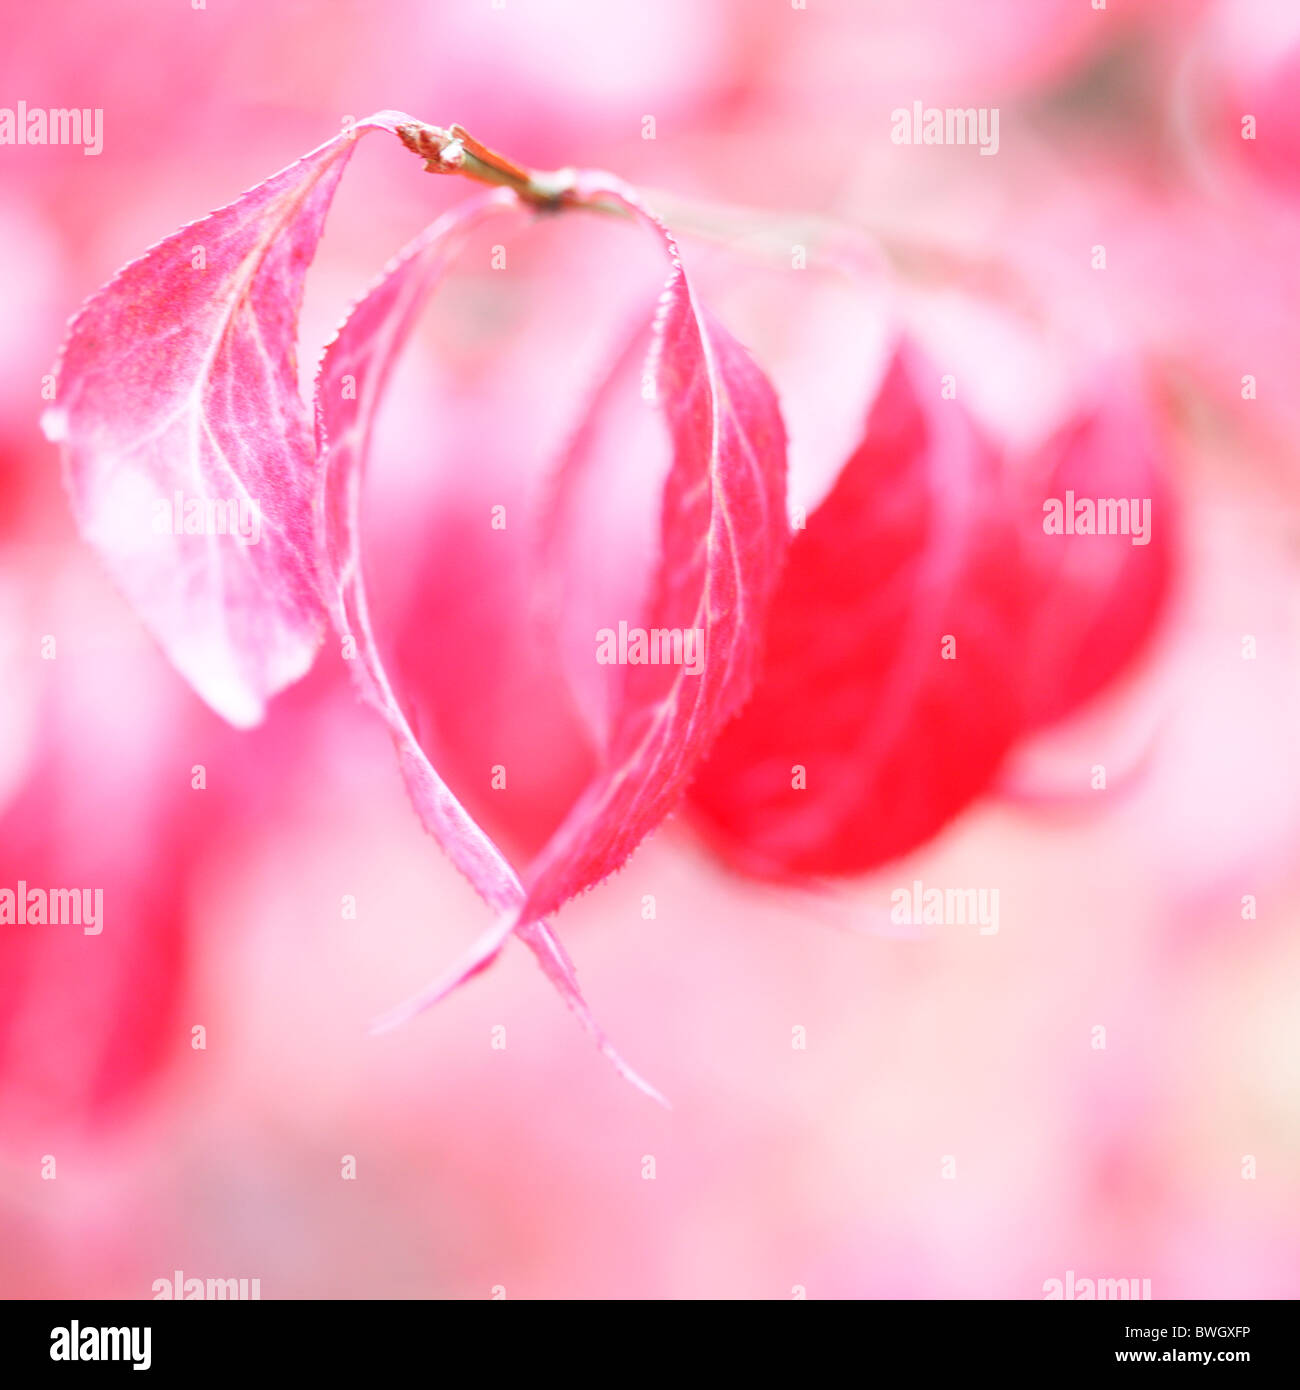 lovely red autumn leaves of the euonymus alatus bush - fine art photography Jane-Ann Butler Photography JABP945 - Stock Image